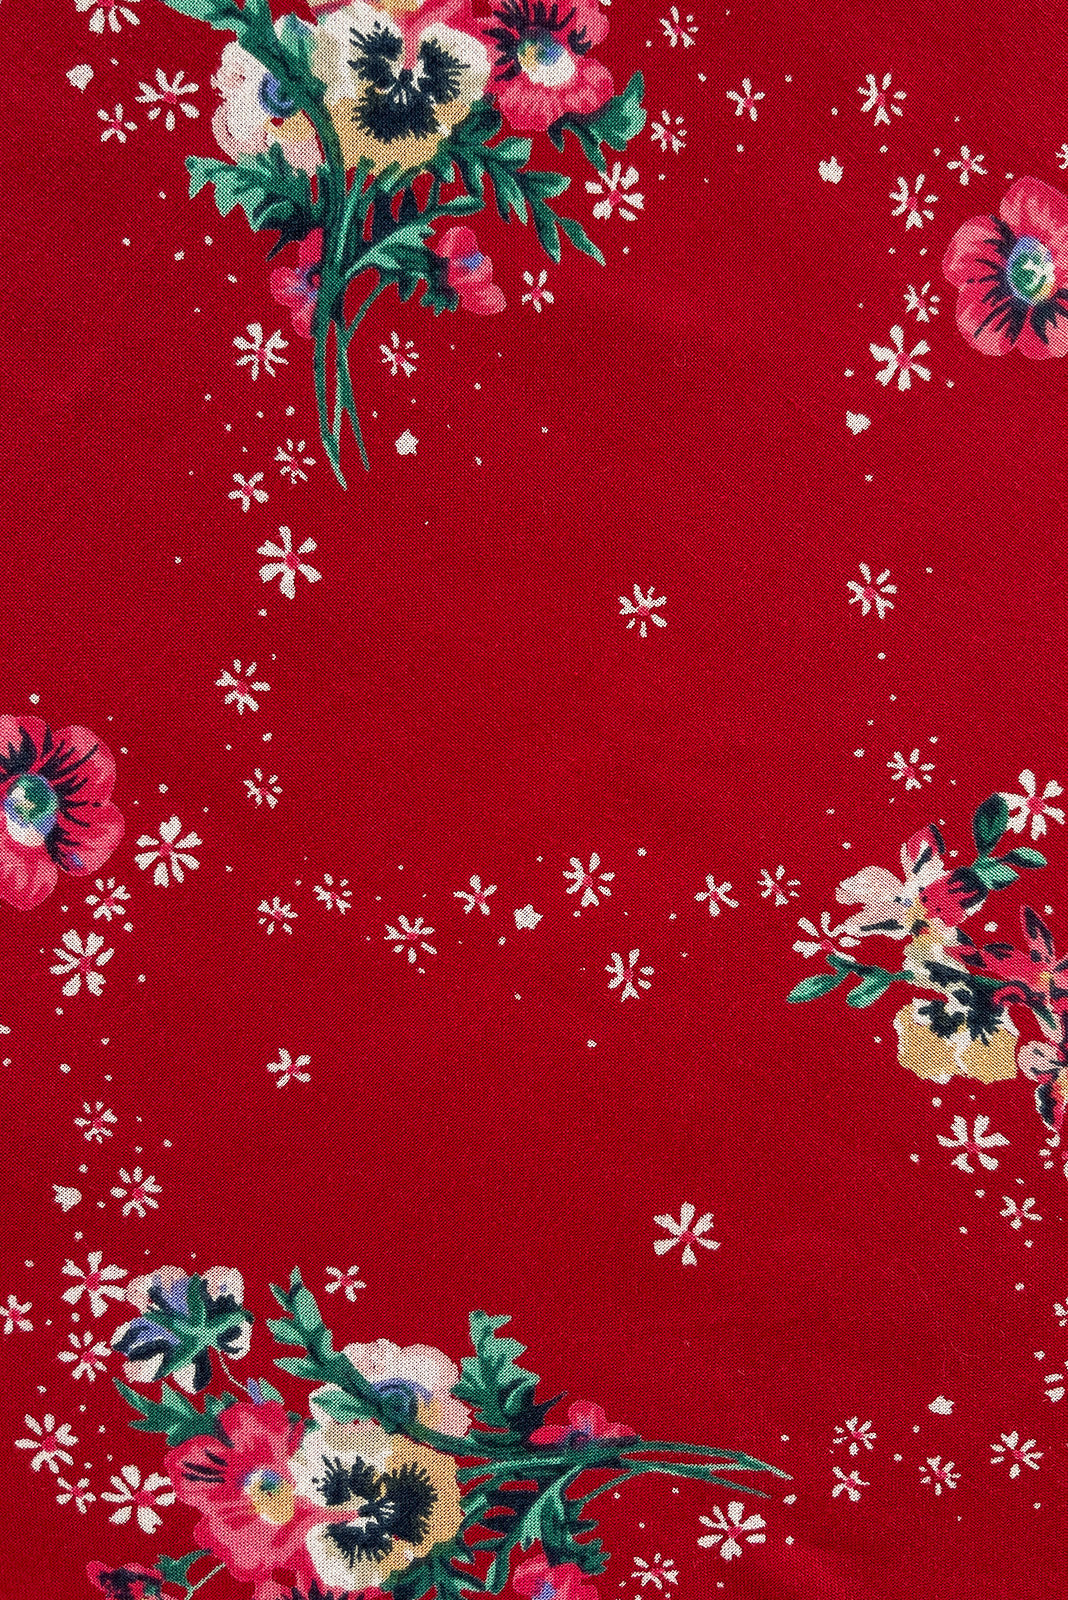 Fabric Swatch of Petal Red Pansy Maxi Wrap Dress featuring woven 100% rayon in bold red base with sweet floral print.  Edit alt text